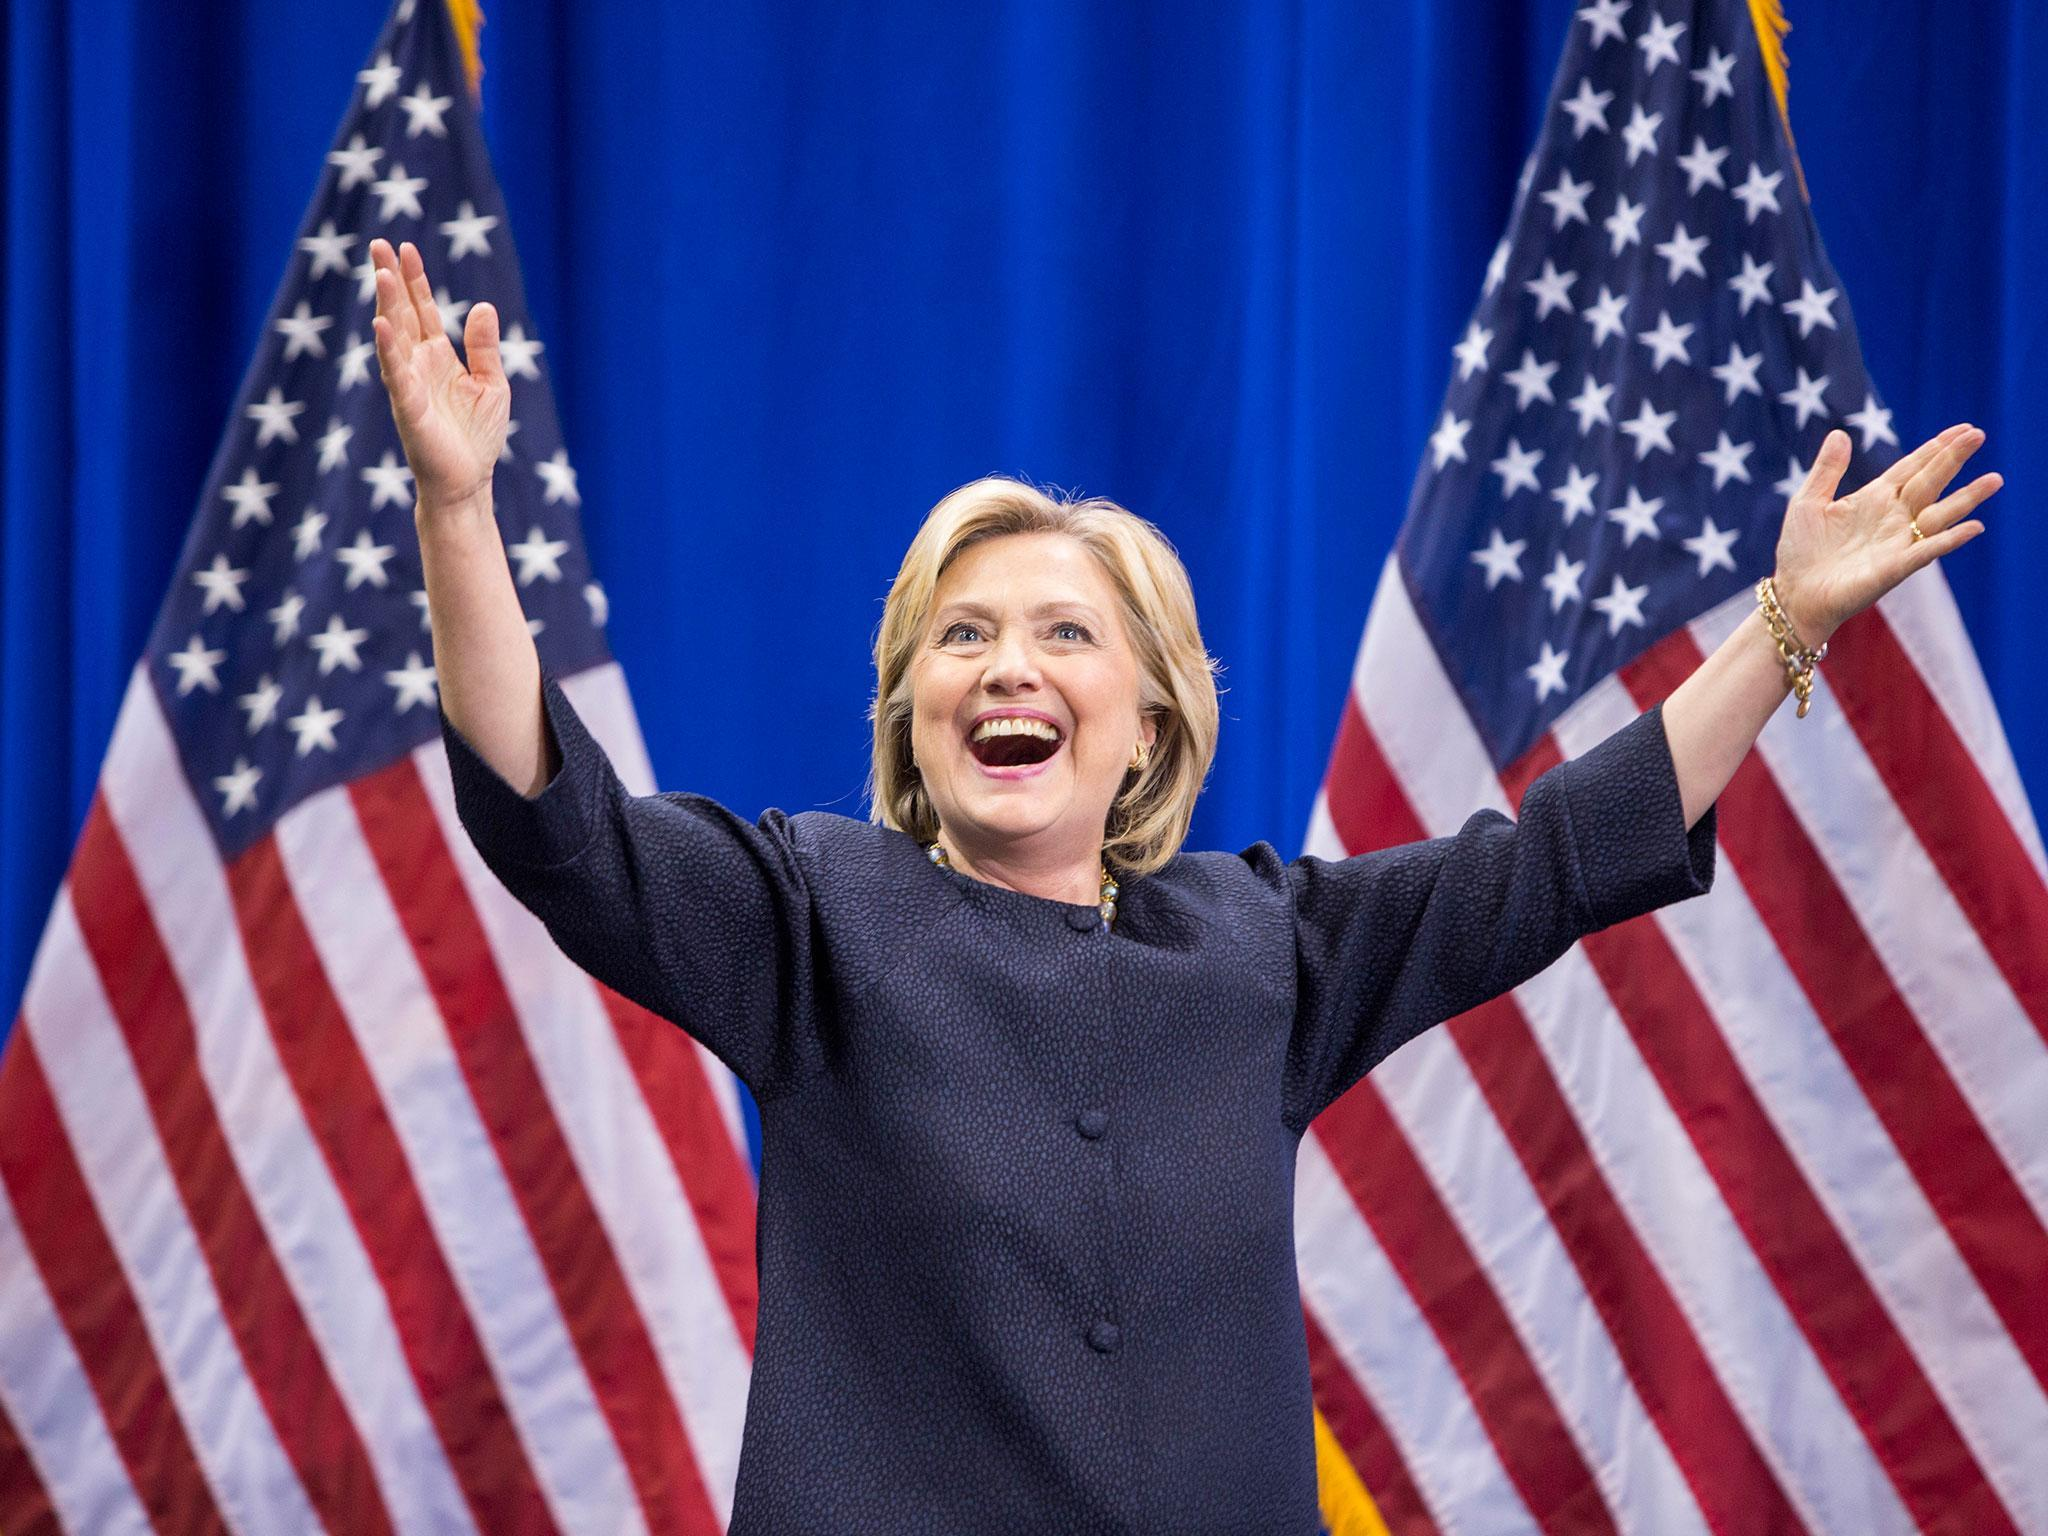 hillary clinton 2016 wallpaper  Presidential election: Early voting suggests Hillary Clinton is ...